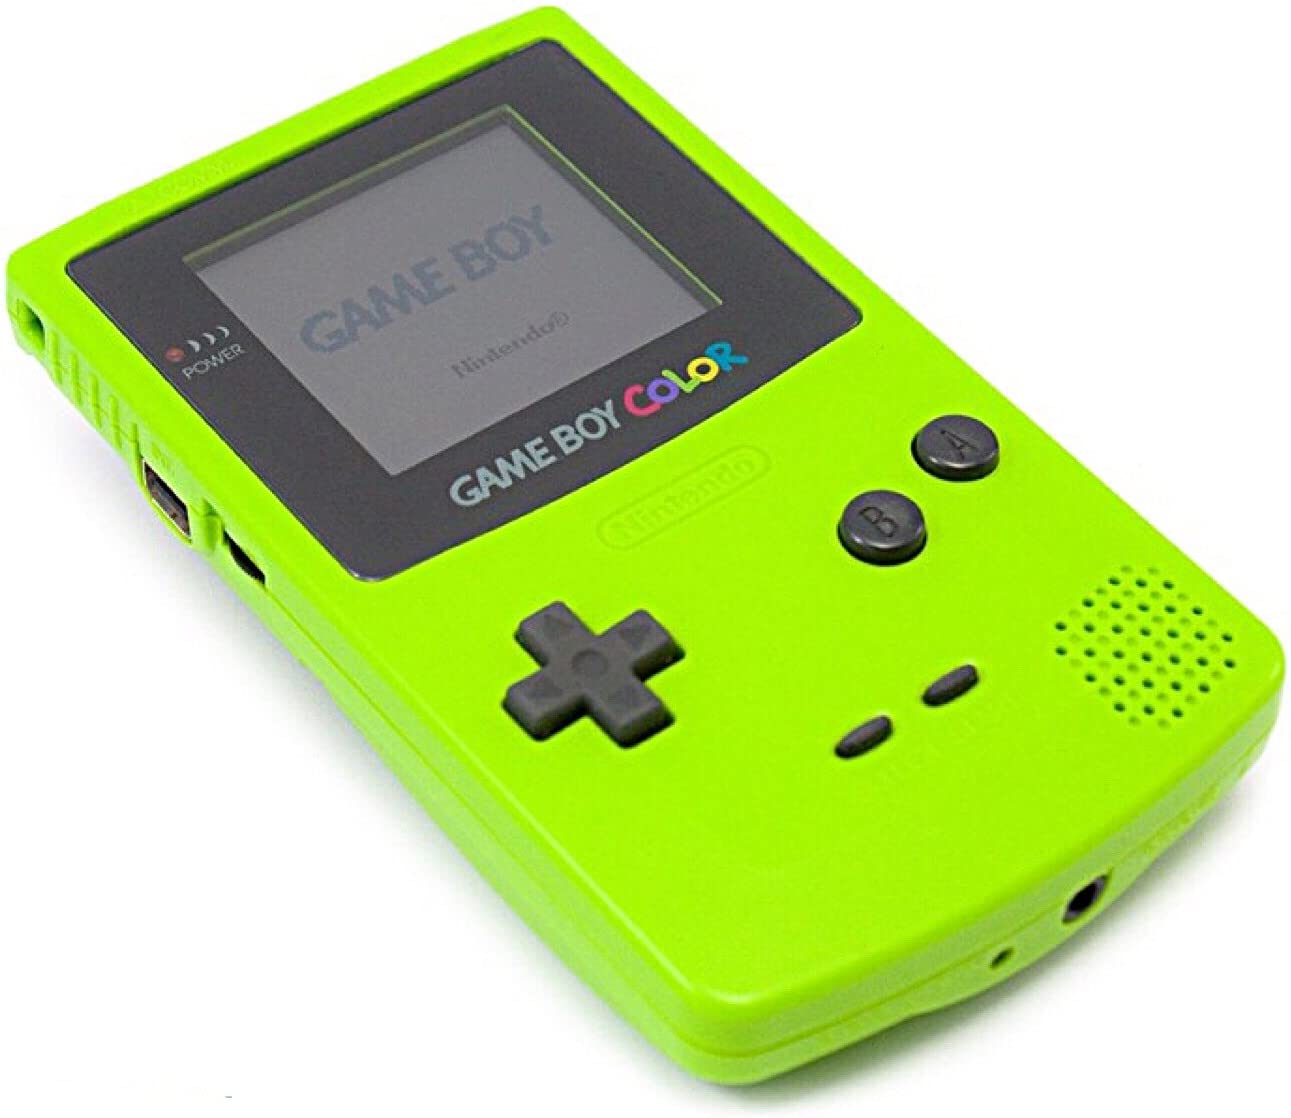 Game boy color list - Amazon Com Game Boy Color Atomic Purple Nintendo Game Boy Color Video Games